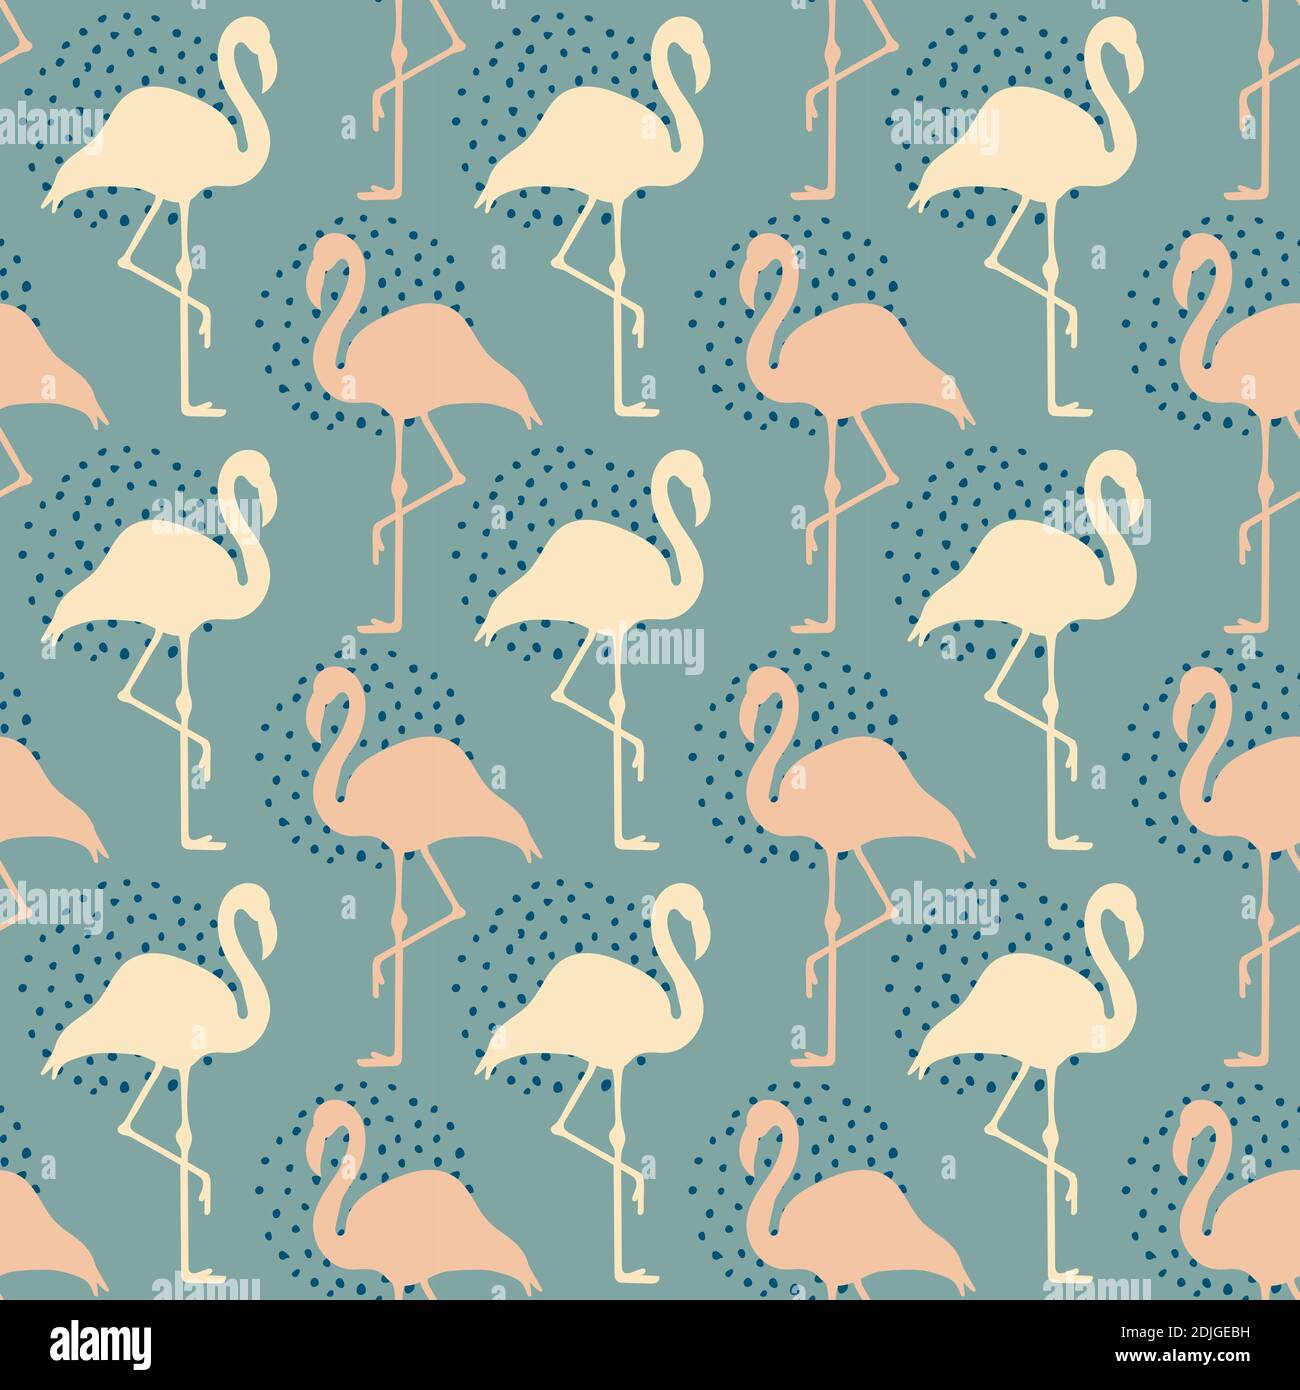 Vector seamless pattern with pink flamingos and dots. Exotic Hawaii art background. Design for fabric, textile, wrapping paper and other decoration. Stock Vector